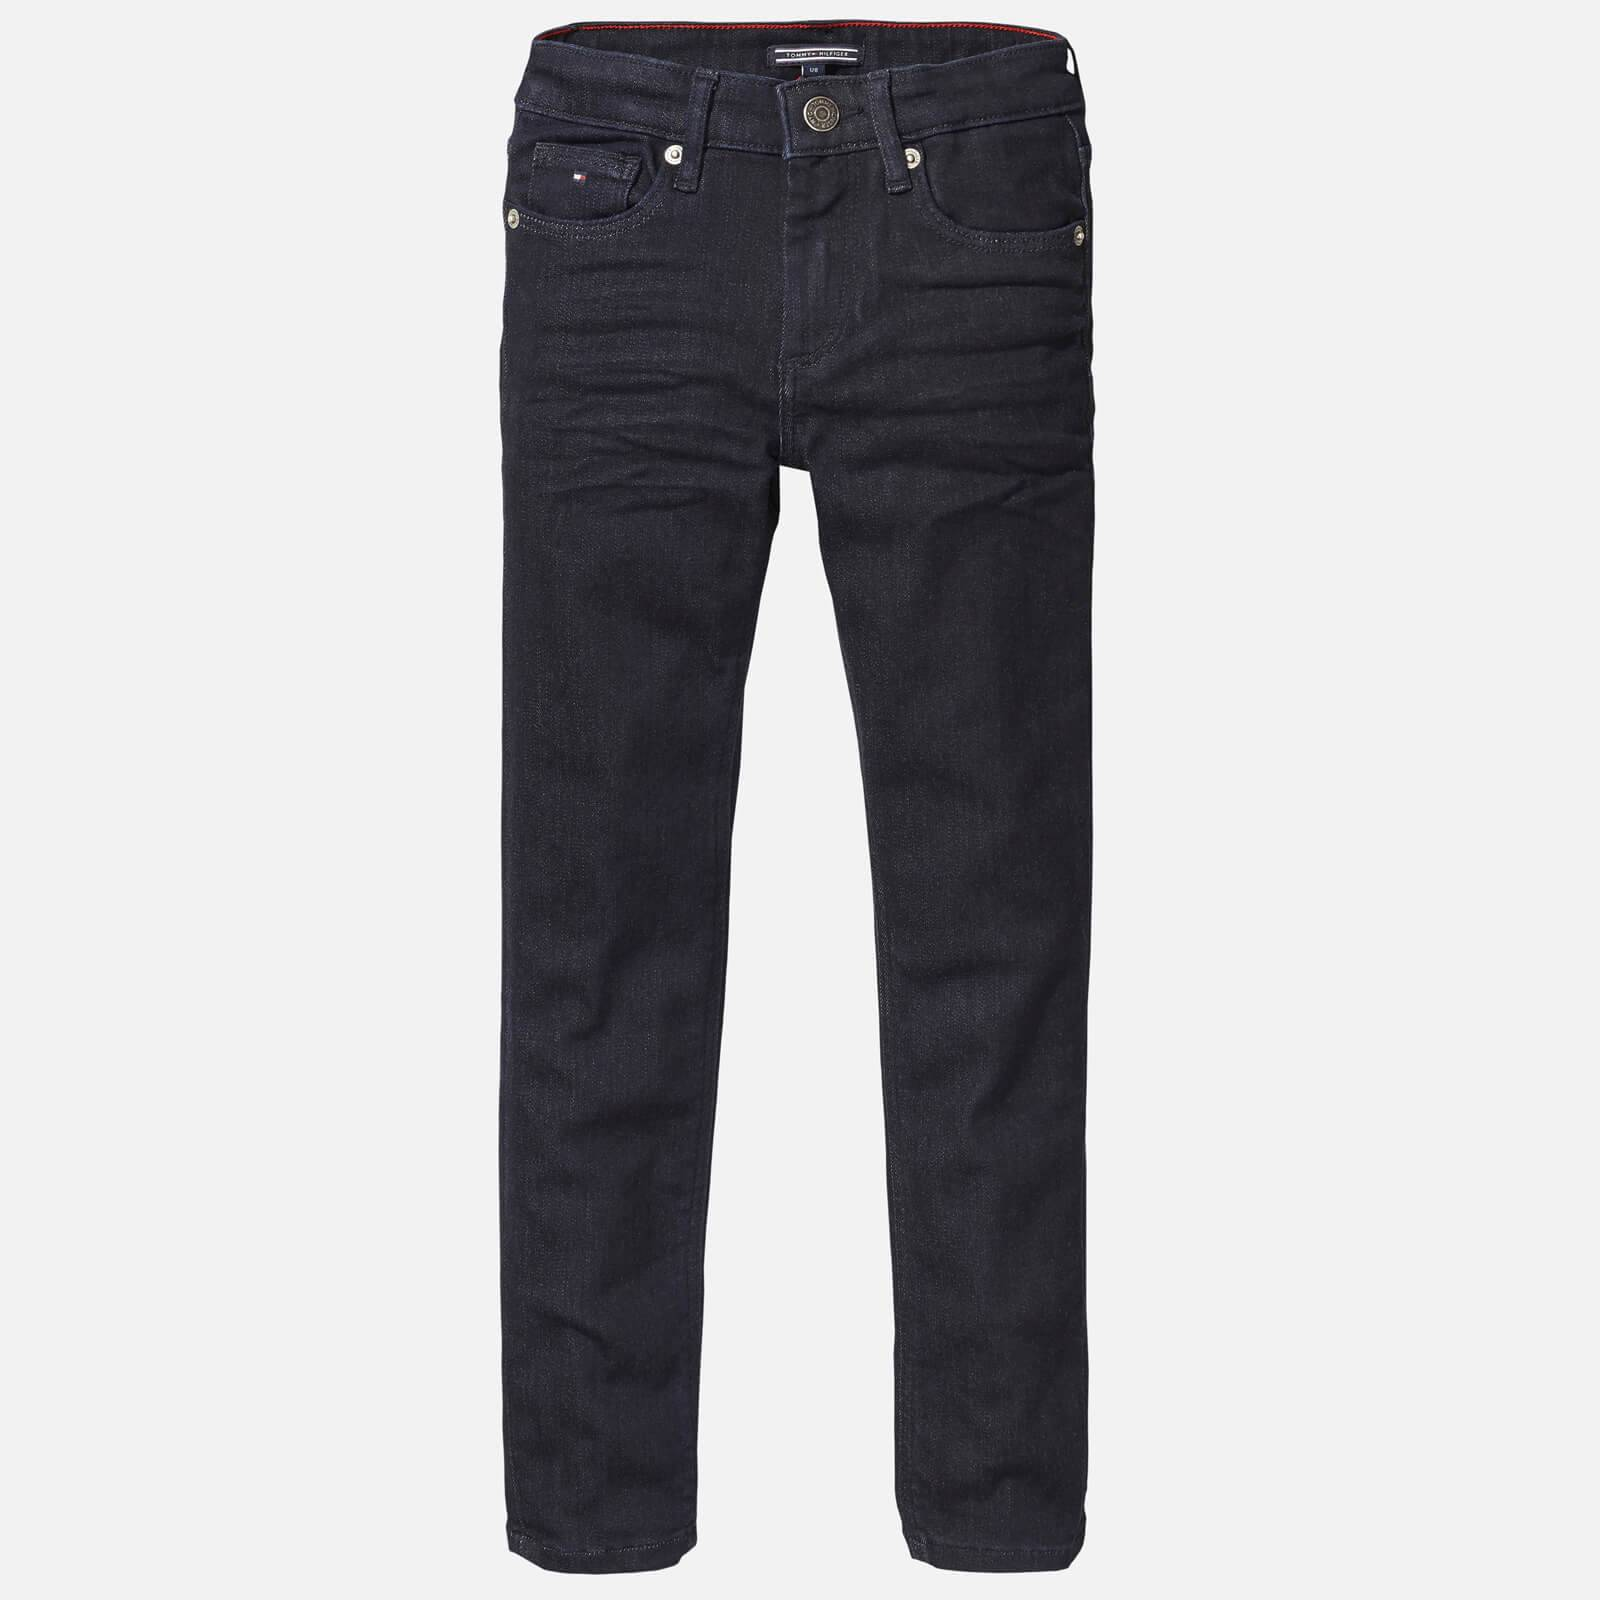 Tommy Hilfiger Boys' Scanton Slim Jeans - Navy - 6 Years - Navy